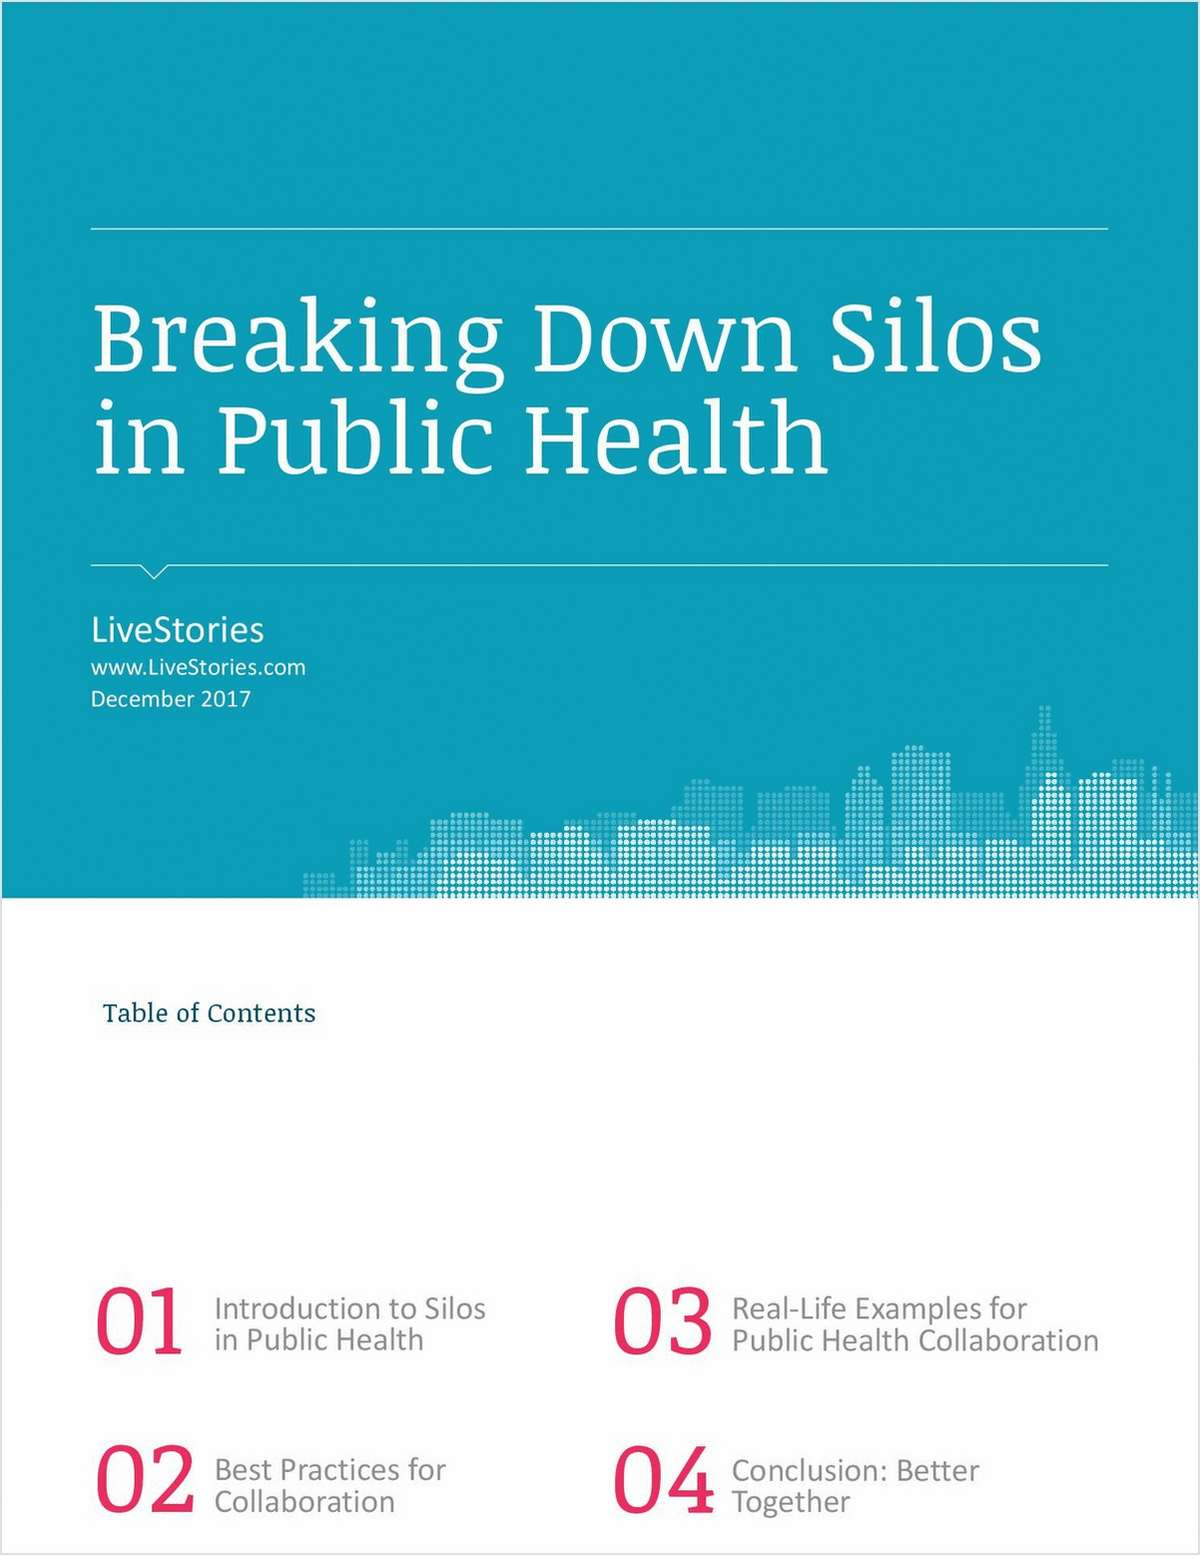 Breaking Down Silos in Public Health